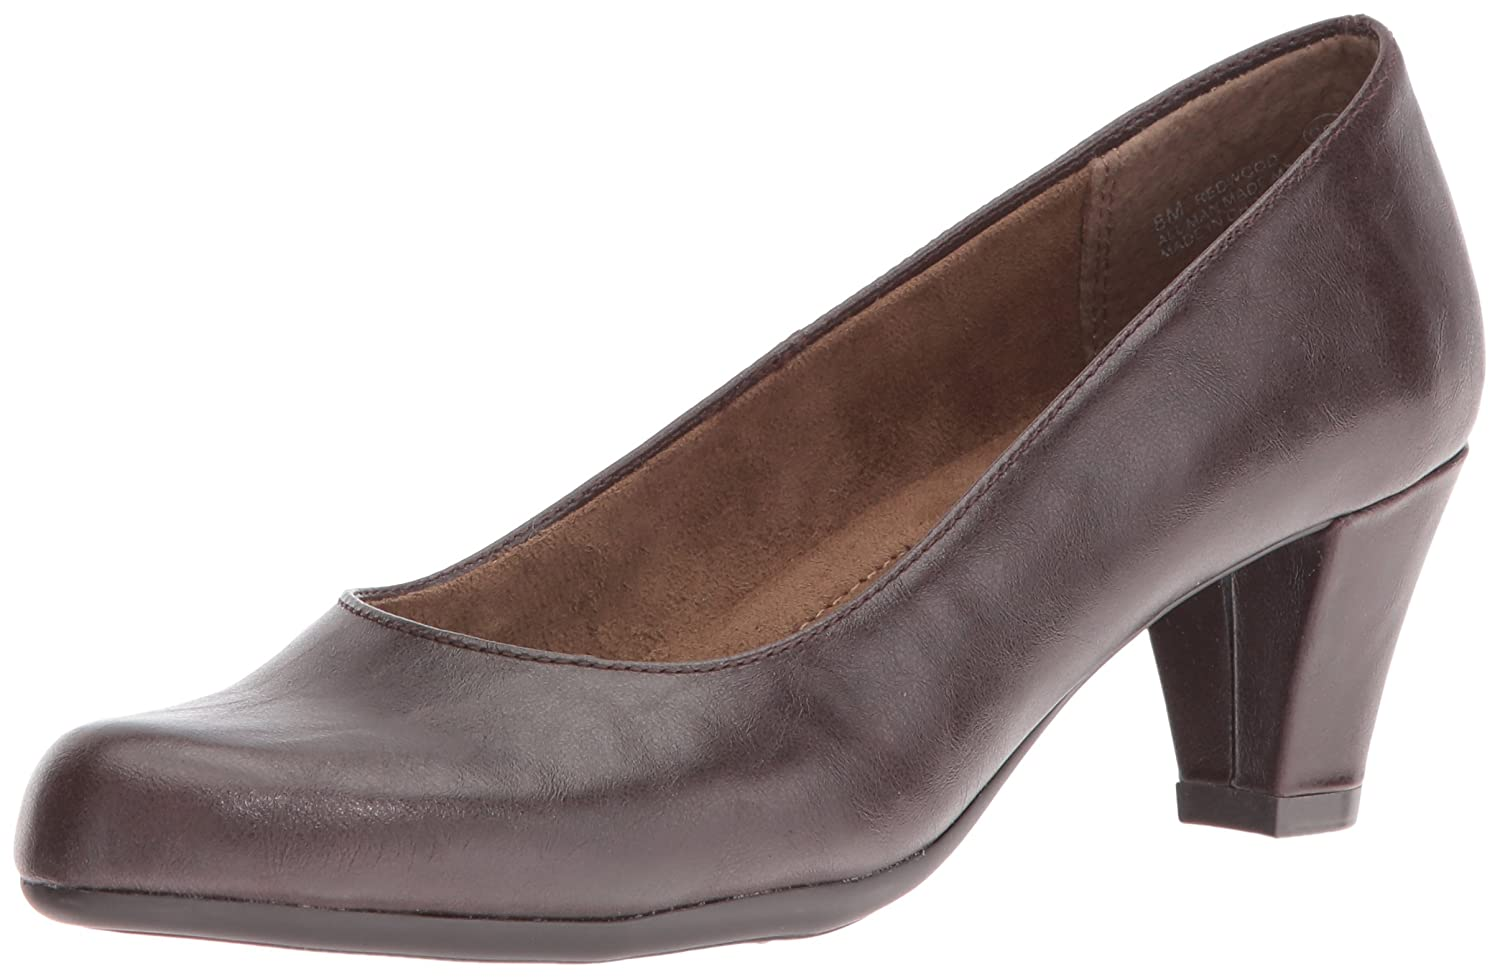 Aerosoles Women's Redwood2 Dress Pump